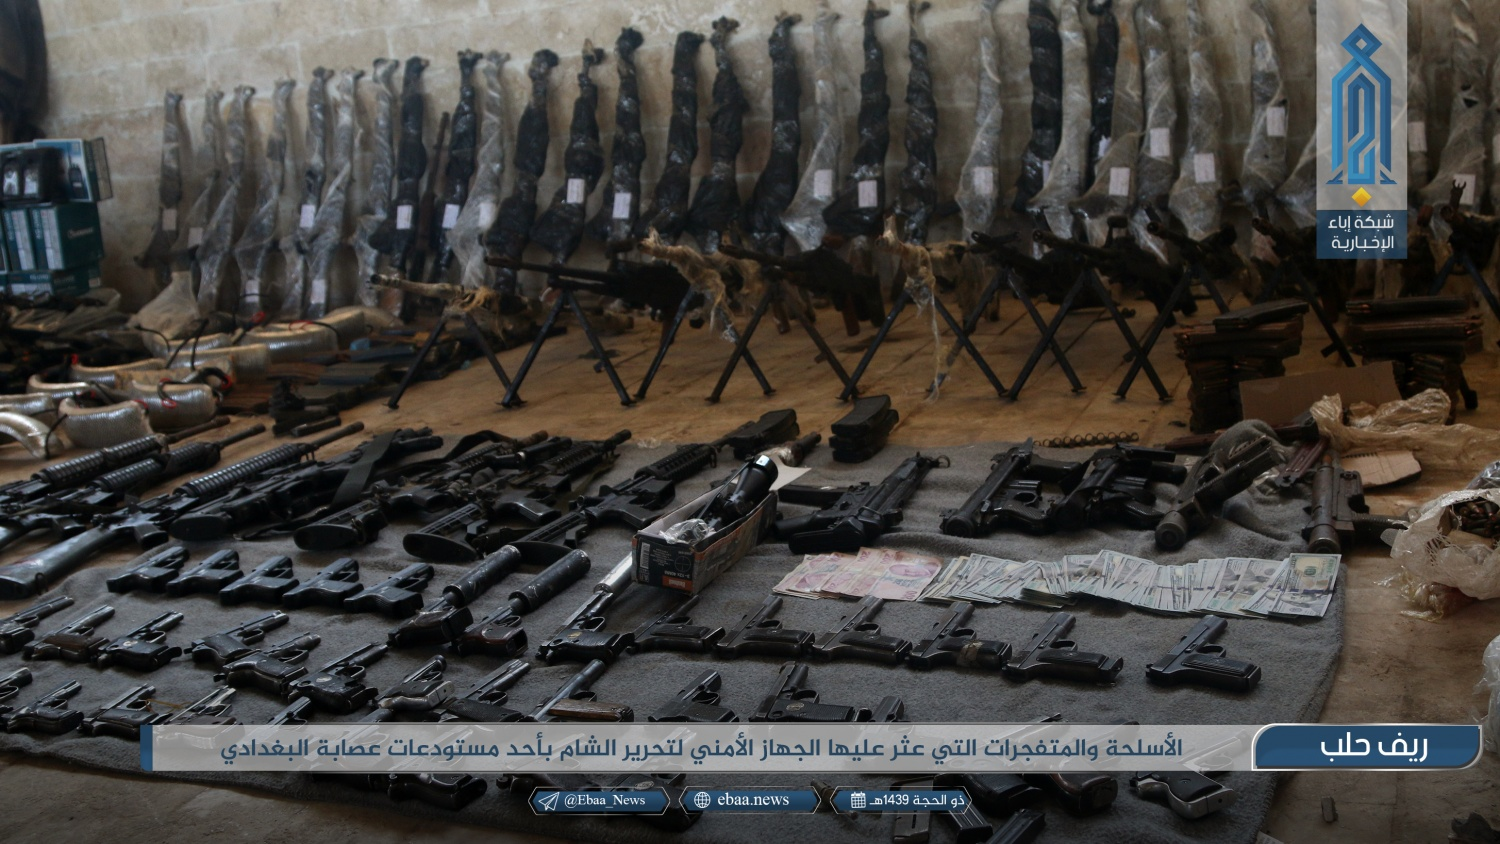 Impressive ISIS Weapons Cache Captured -The Firearm Blog